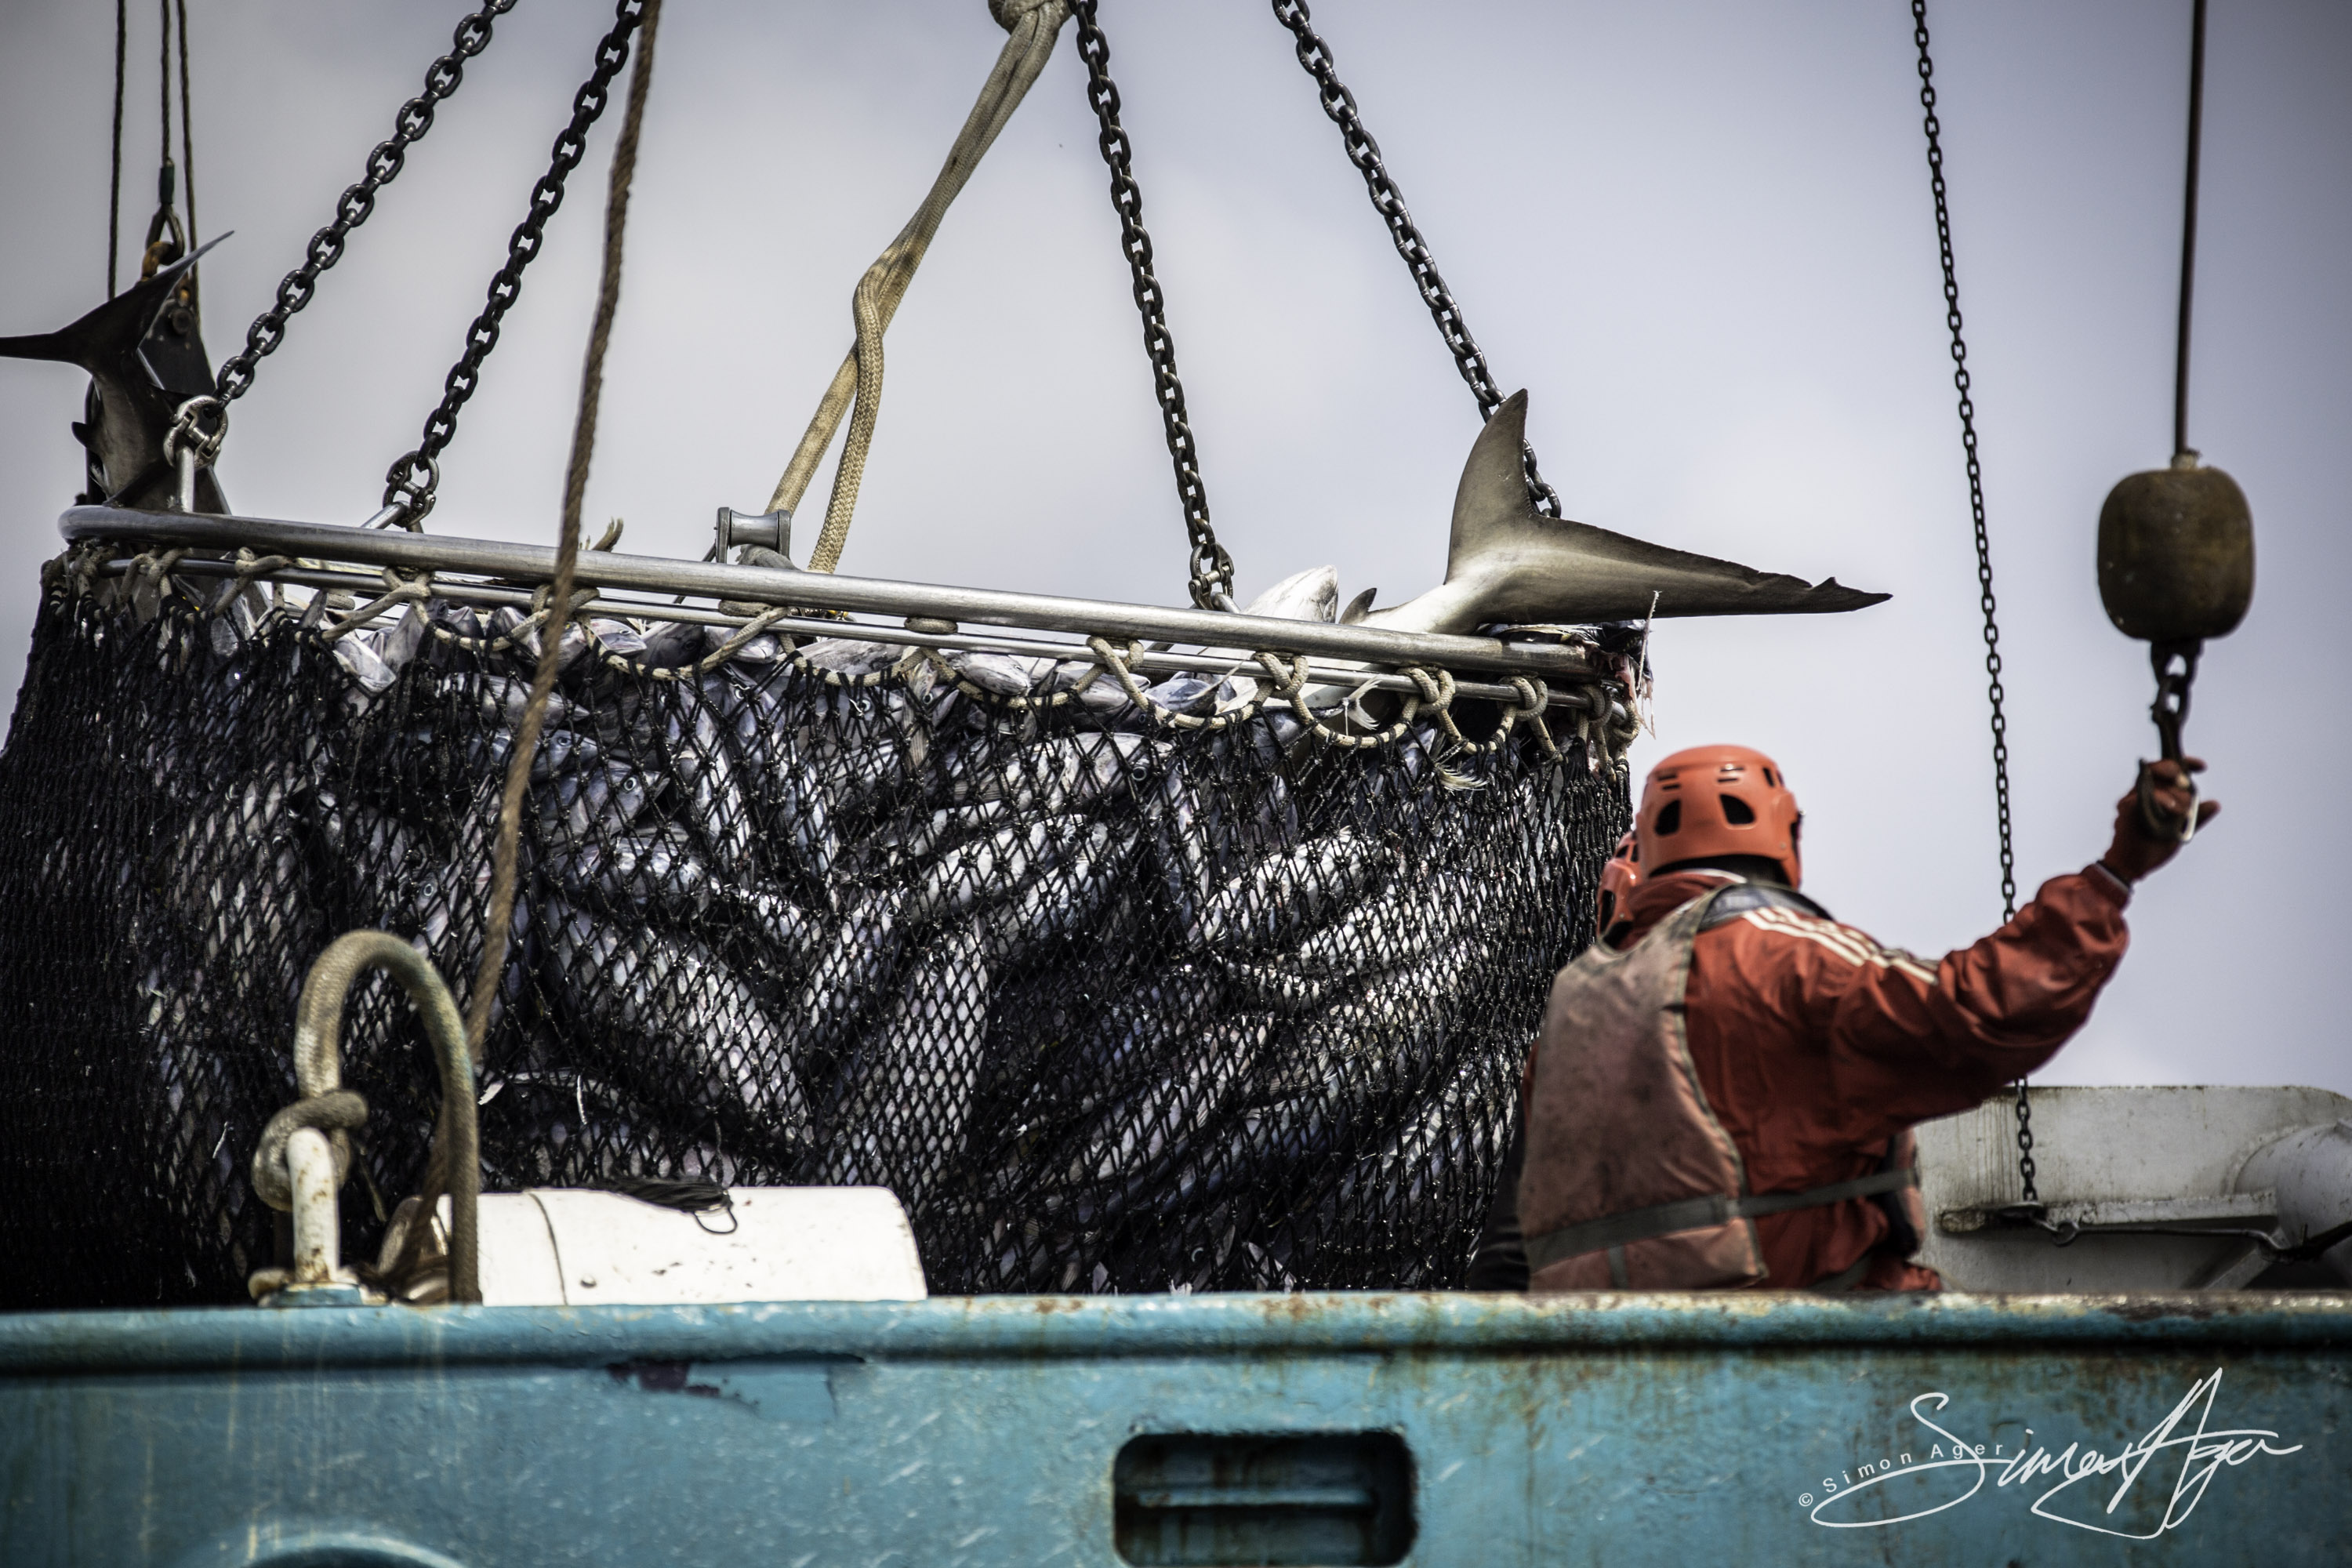 160704-SA-Geuotec-shark-bycatch-dumped-into-the-ocean-7018